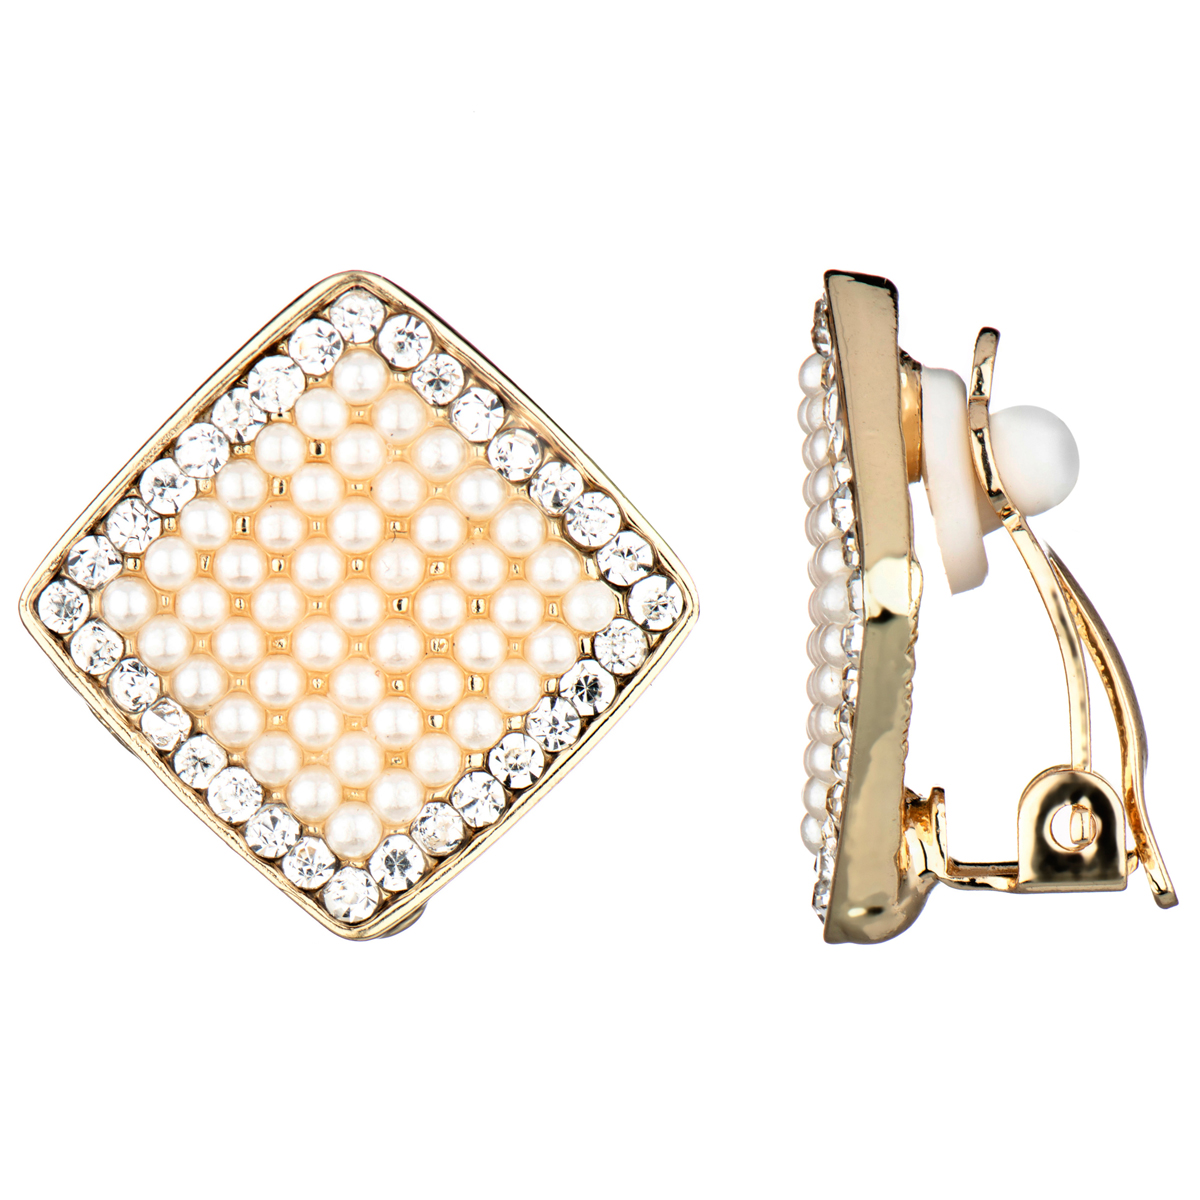 Aideen's Gold Diamond Shape Imitation Pearl And Rhinestone Clip On Earrings  Roll Off Image To Close Zoom Window